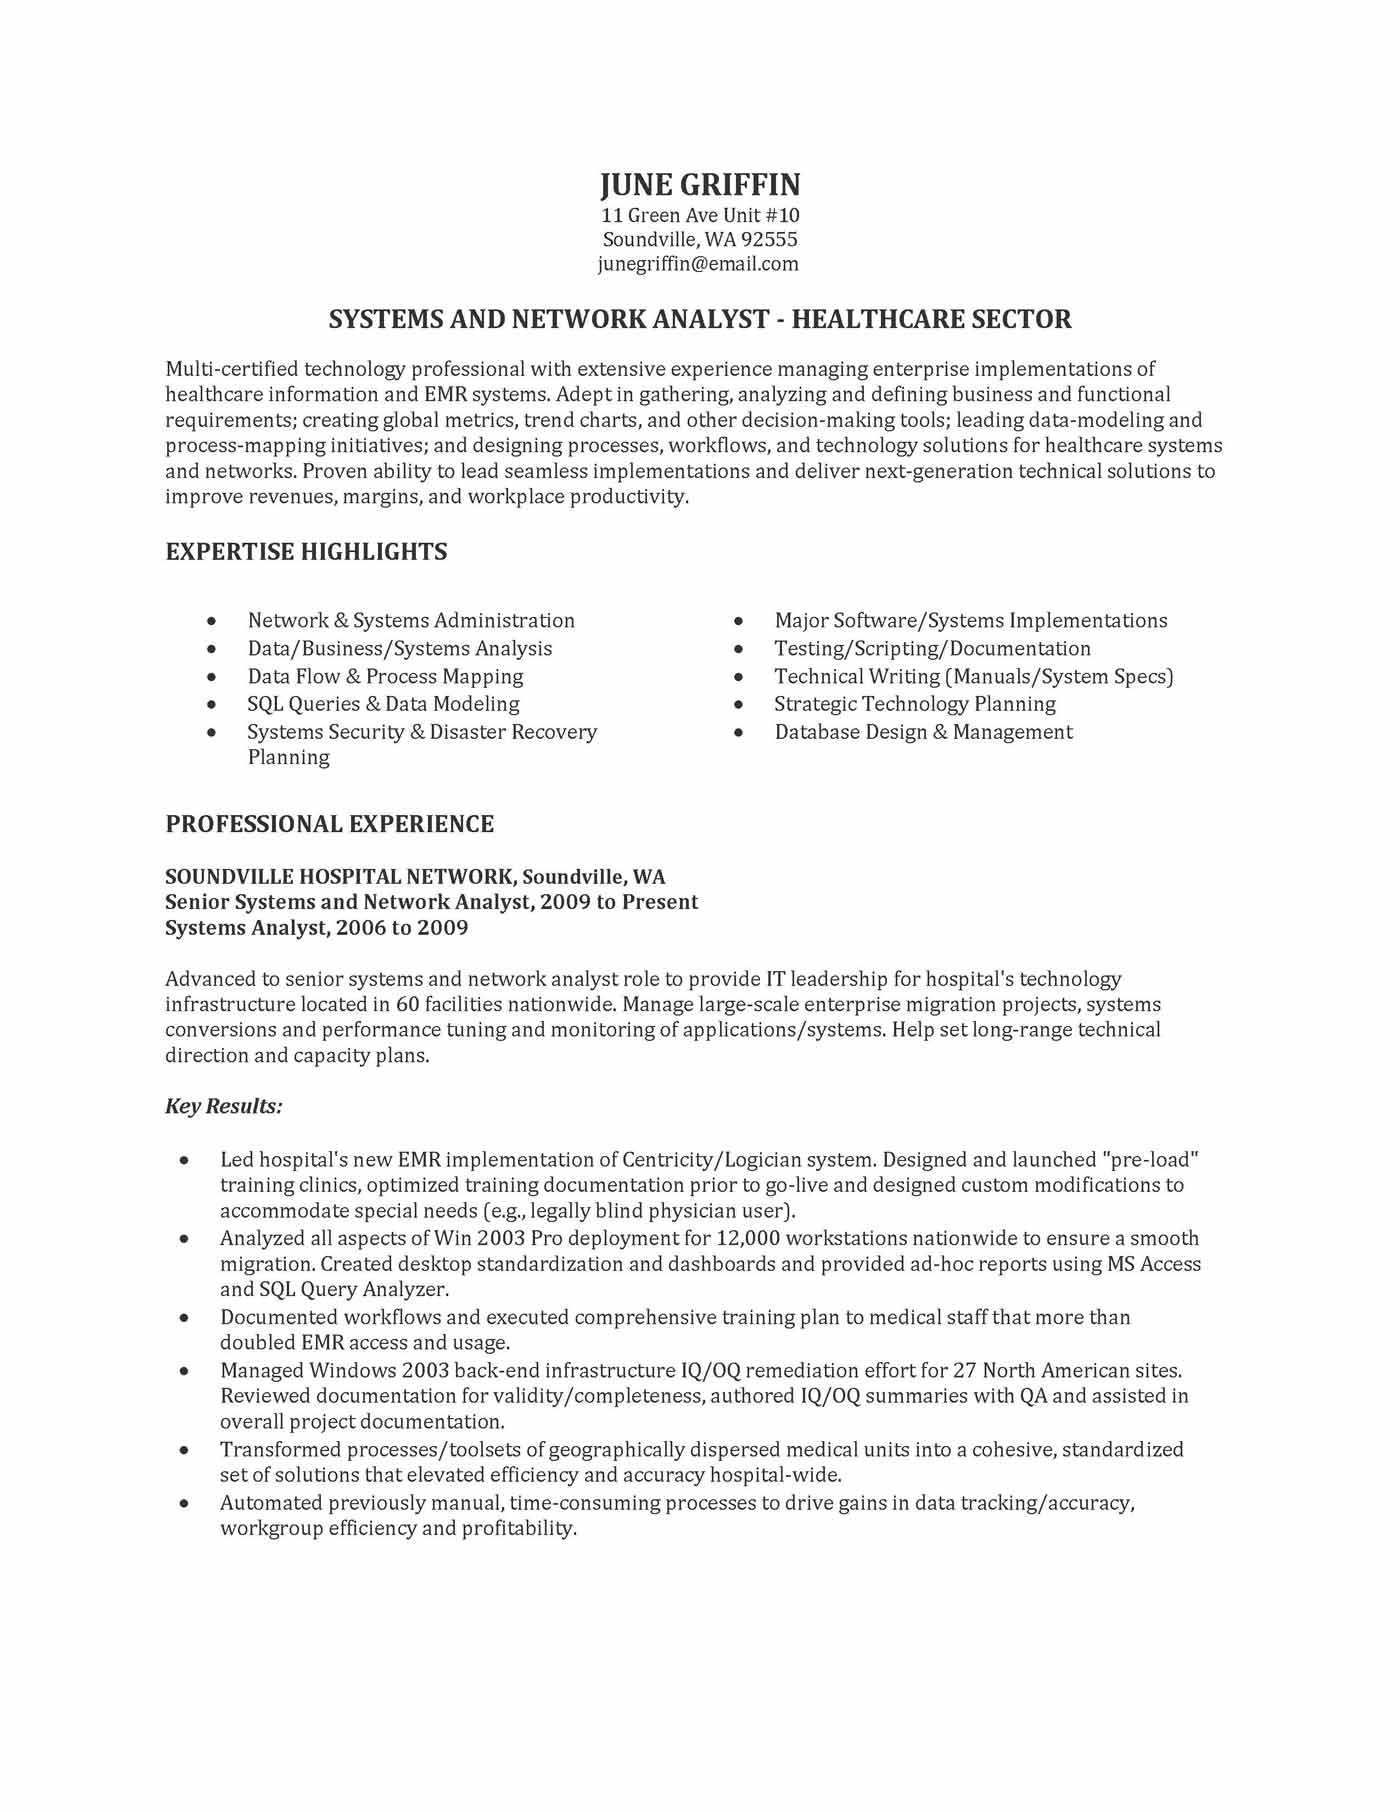 Health Care Cover Letter Healthcare Management Resume Cover Letter Cover Letter Templates .